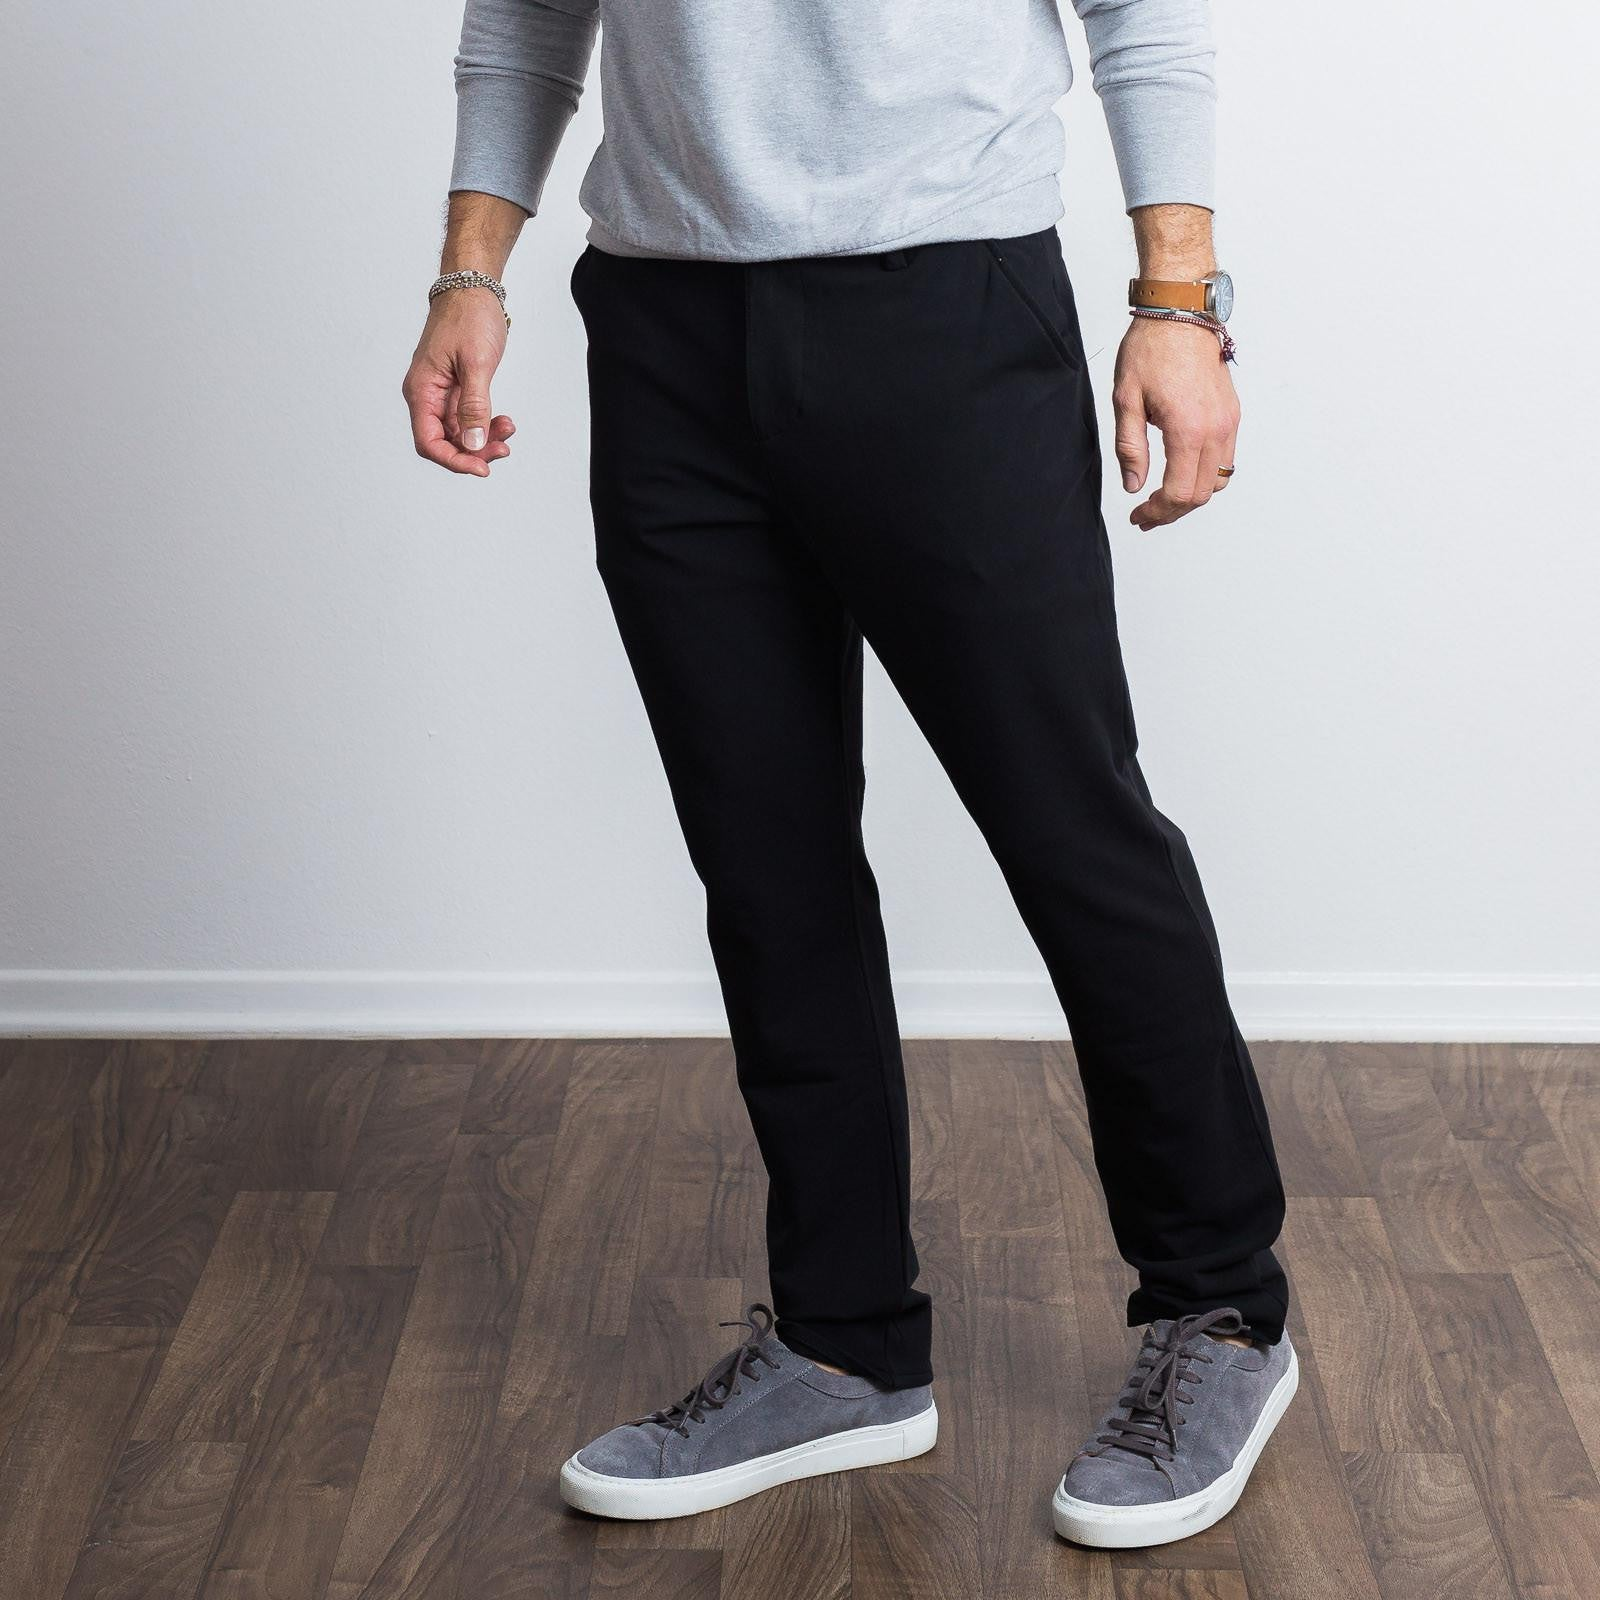 Black Everywear Stretch Chino Knit Pants - Sweat Tailor